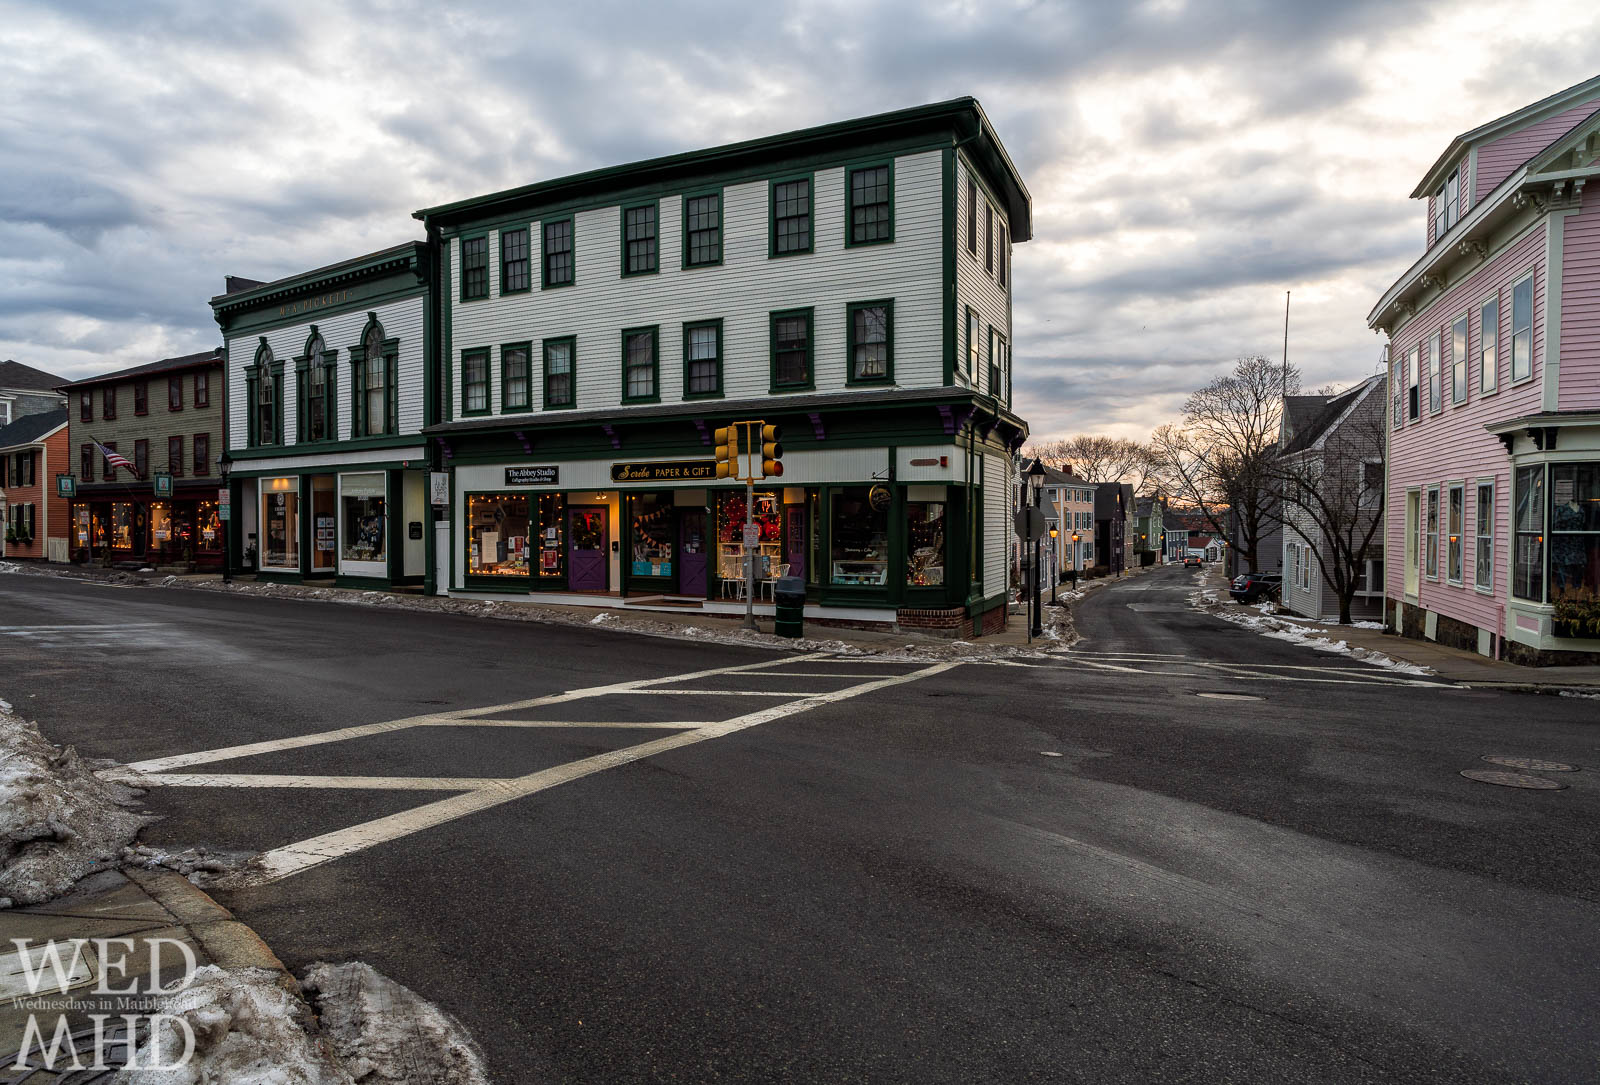 A view down State and across Washington Street as the sun rises over historic downtown Marblehead and I stand on the corner taking it all in